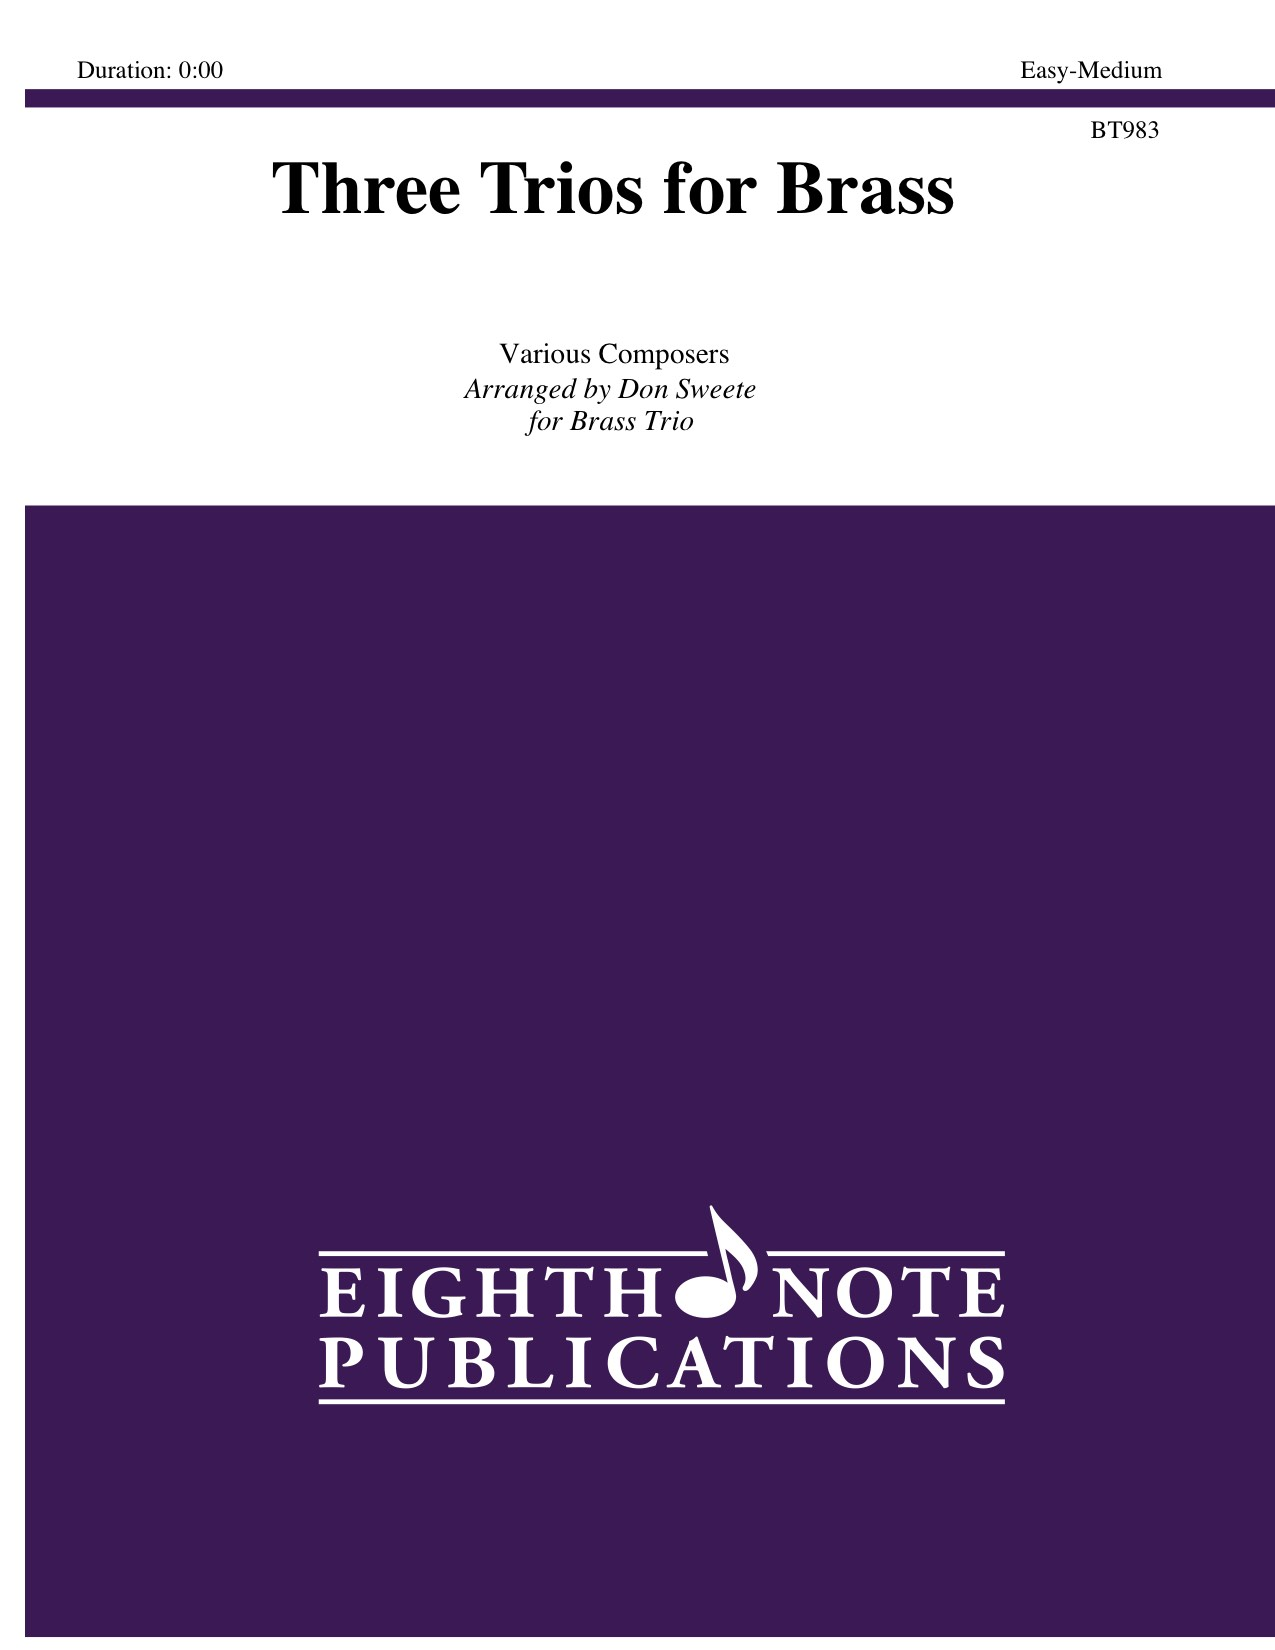 Three Trios for Brass -  Various